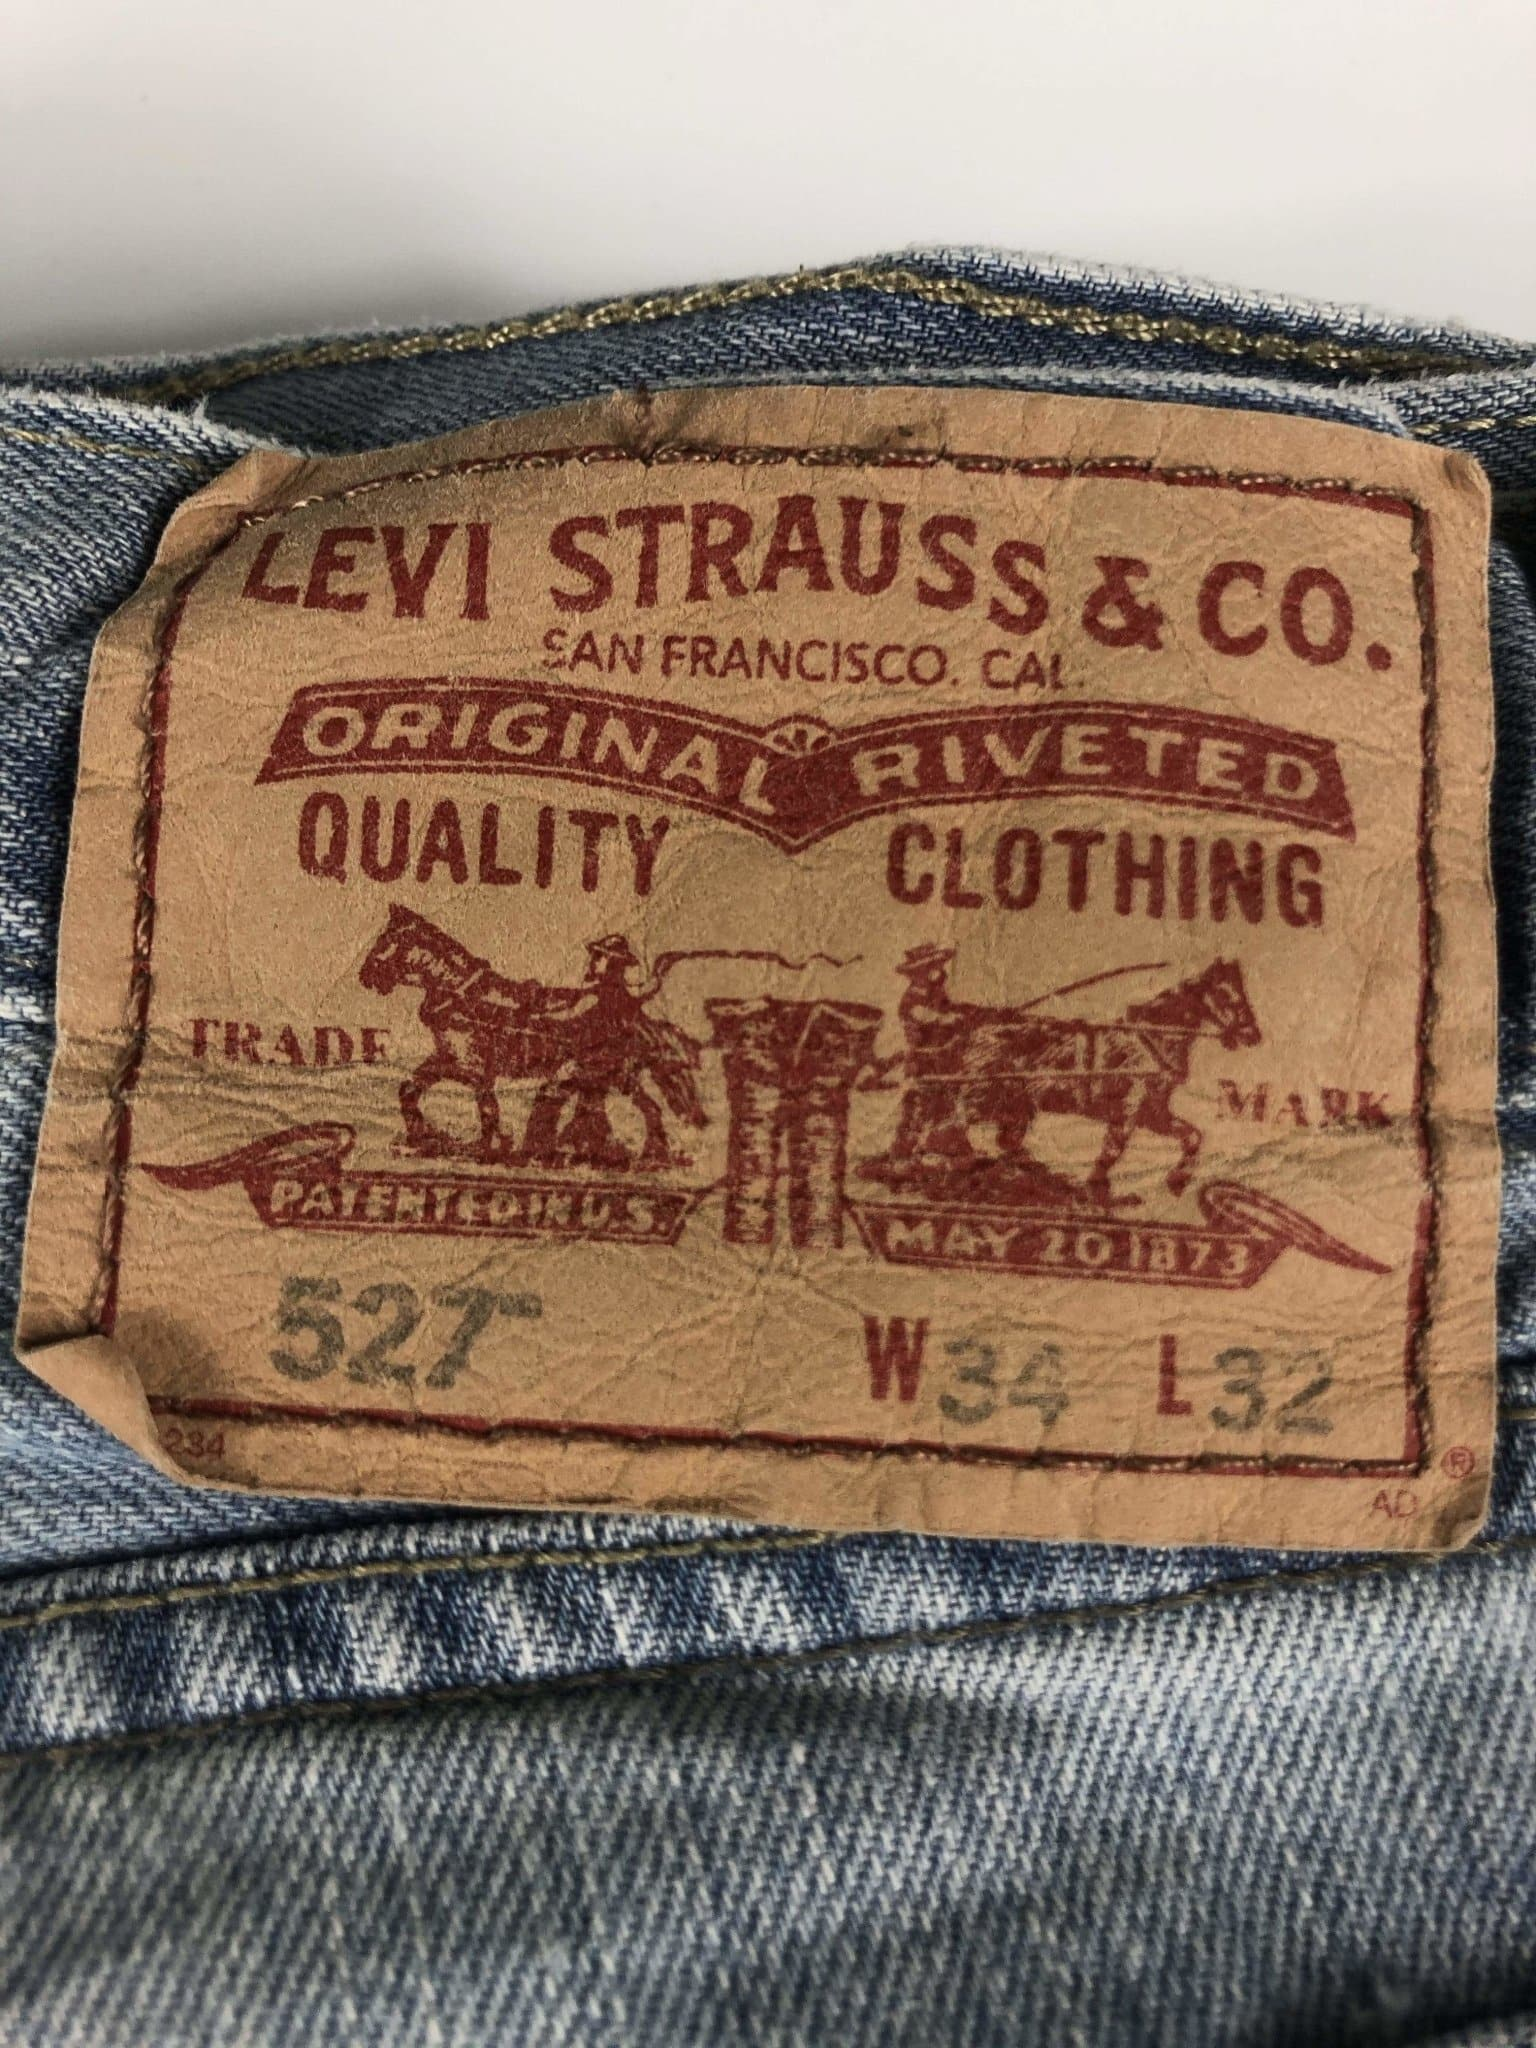 Vintage Levi's Classic 527 Jeans W34 L32 (M15) - Discounted Deals UK